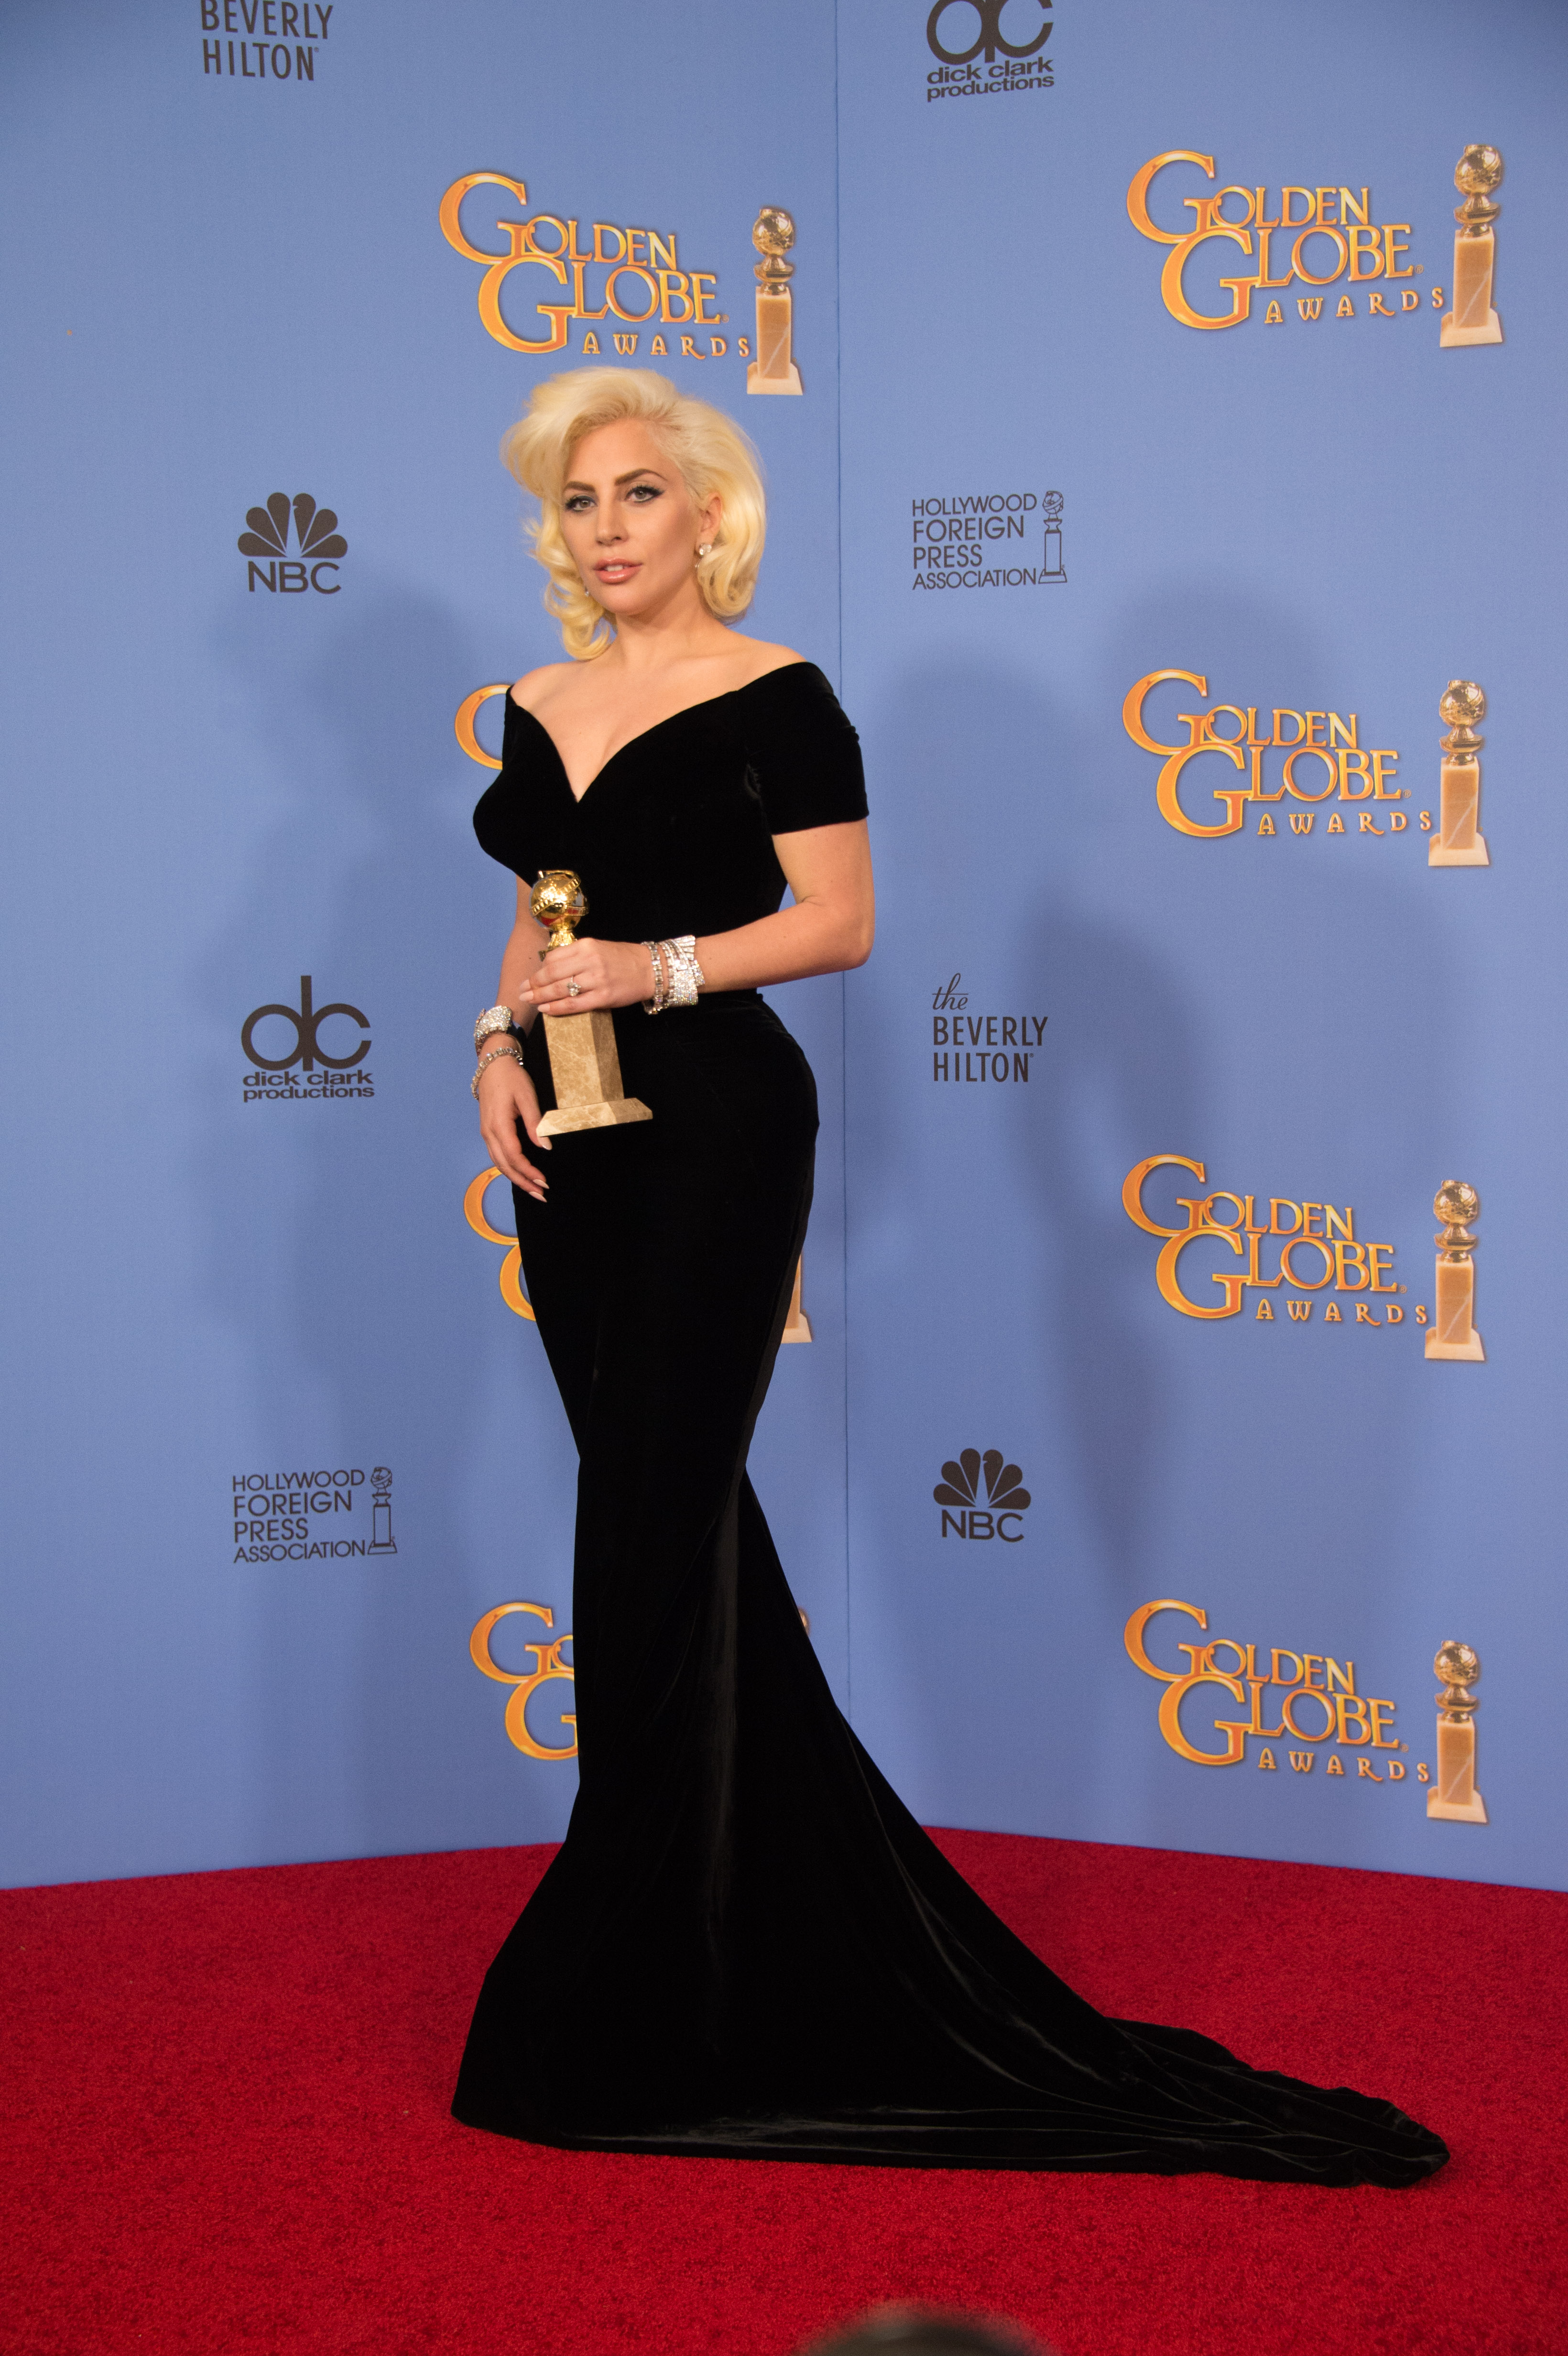 """After winning the category of BEST PERFORMANCE BY AN ACTRESS IN A MINI-SERIES OR MOTION PICTURE MADE FOR TELEVISION for her role in """"American Horror Story: Hotel,"""" actress Lady Gaga poses backstage in the press room with her Golden Globe Award at the 73rd Annual Golden Globe Awards at the Beverly Hilton in Beverly Hills, CA on Sunday, January 10, 2016."""